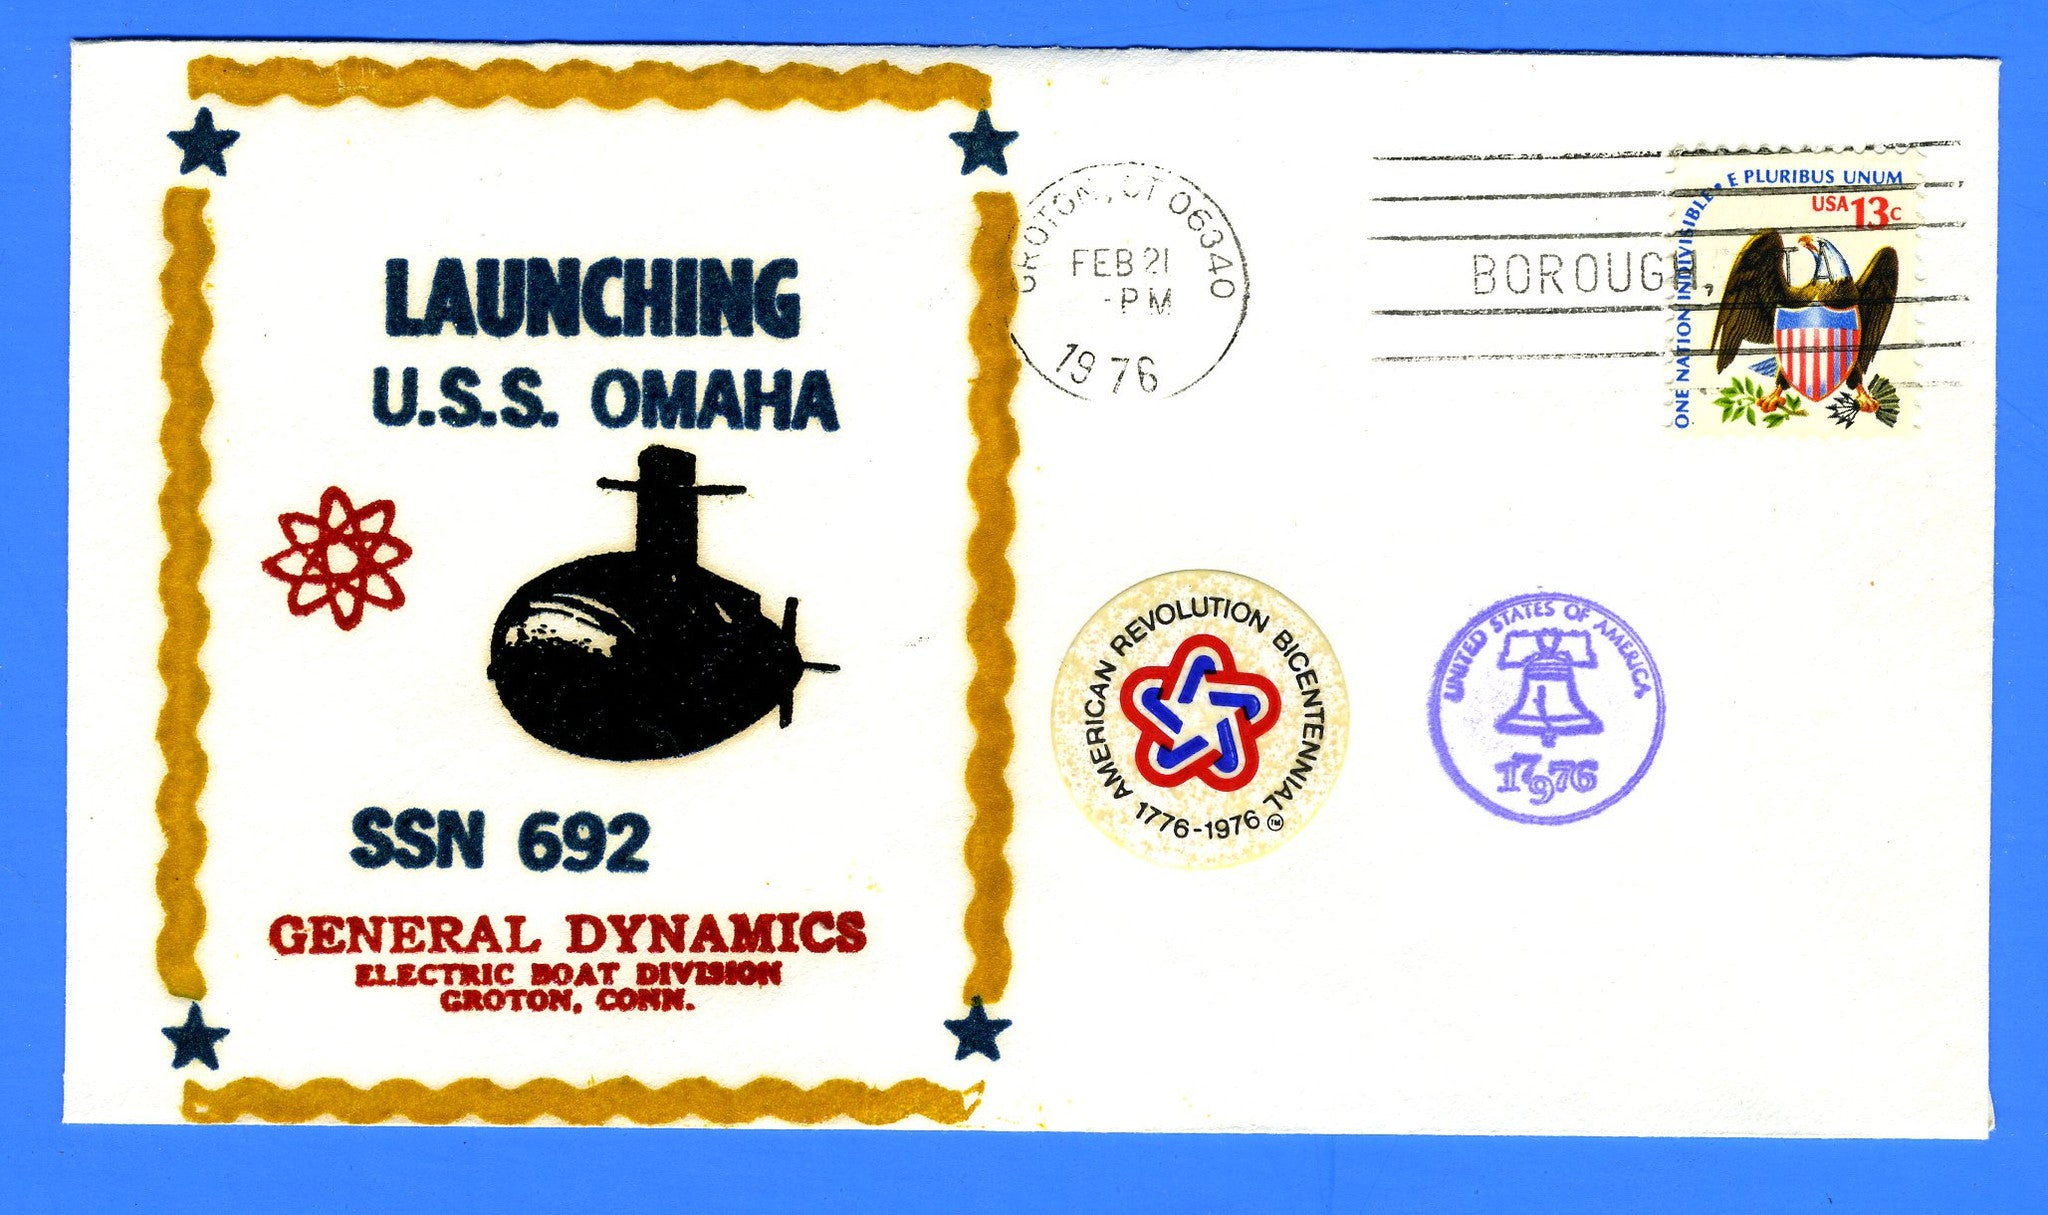 USS Omaha SSN-692 Launched February 21, 1976 - Raised Printed Thermographed Cachet by R & R Covers